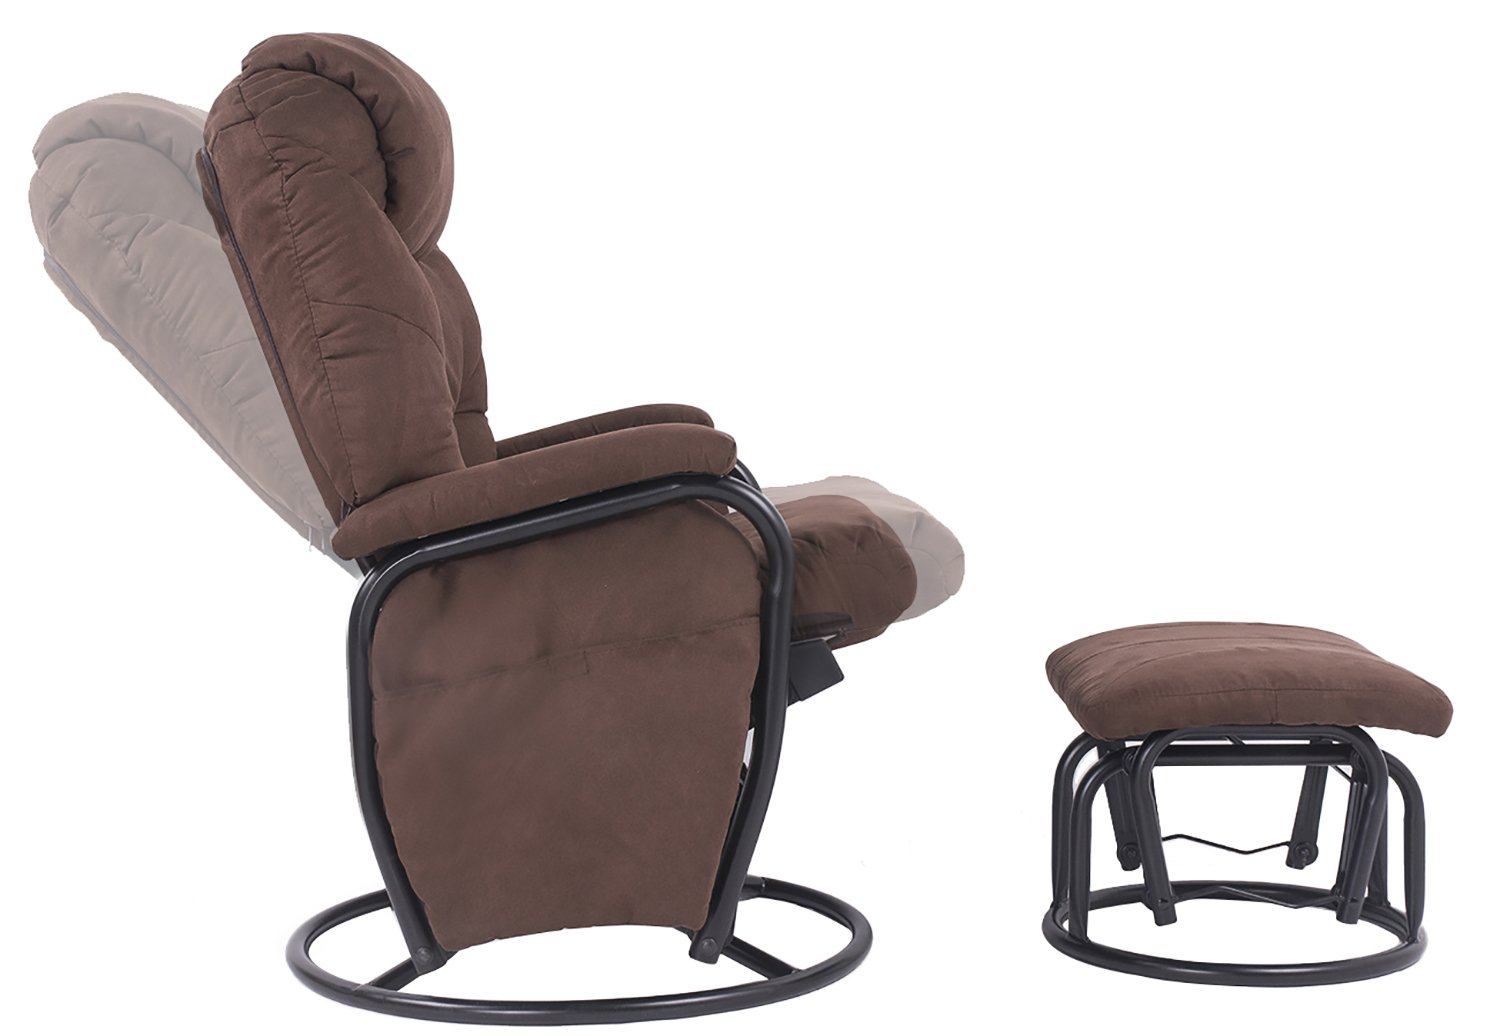 Amazon.com : Merax® Home Furniture Ergonomic Suede Fabric Swivel ...